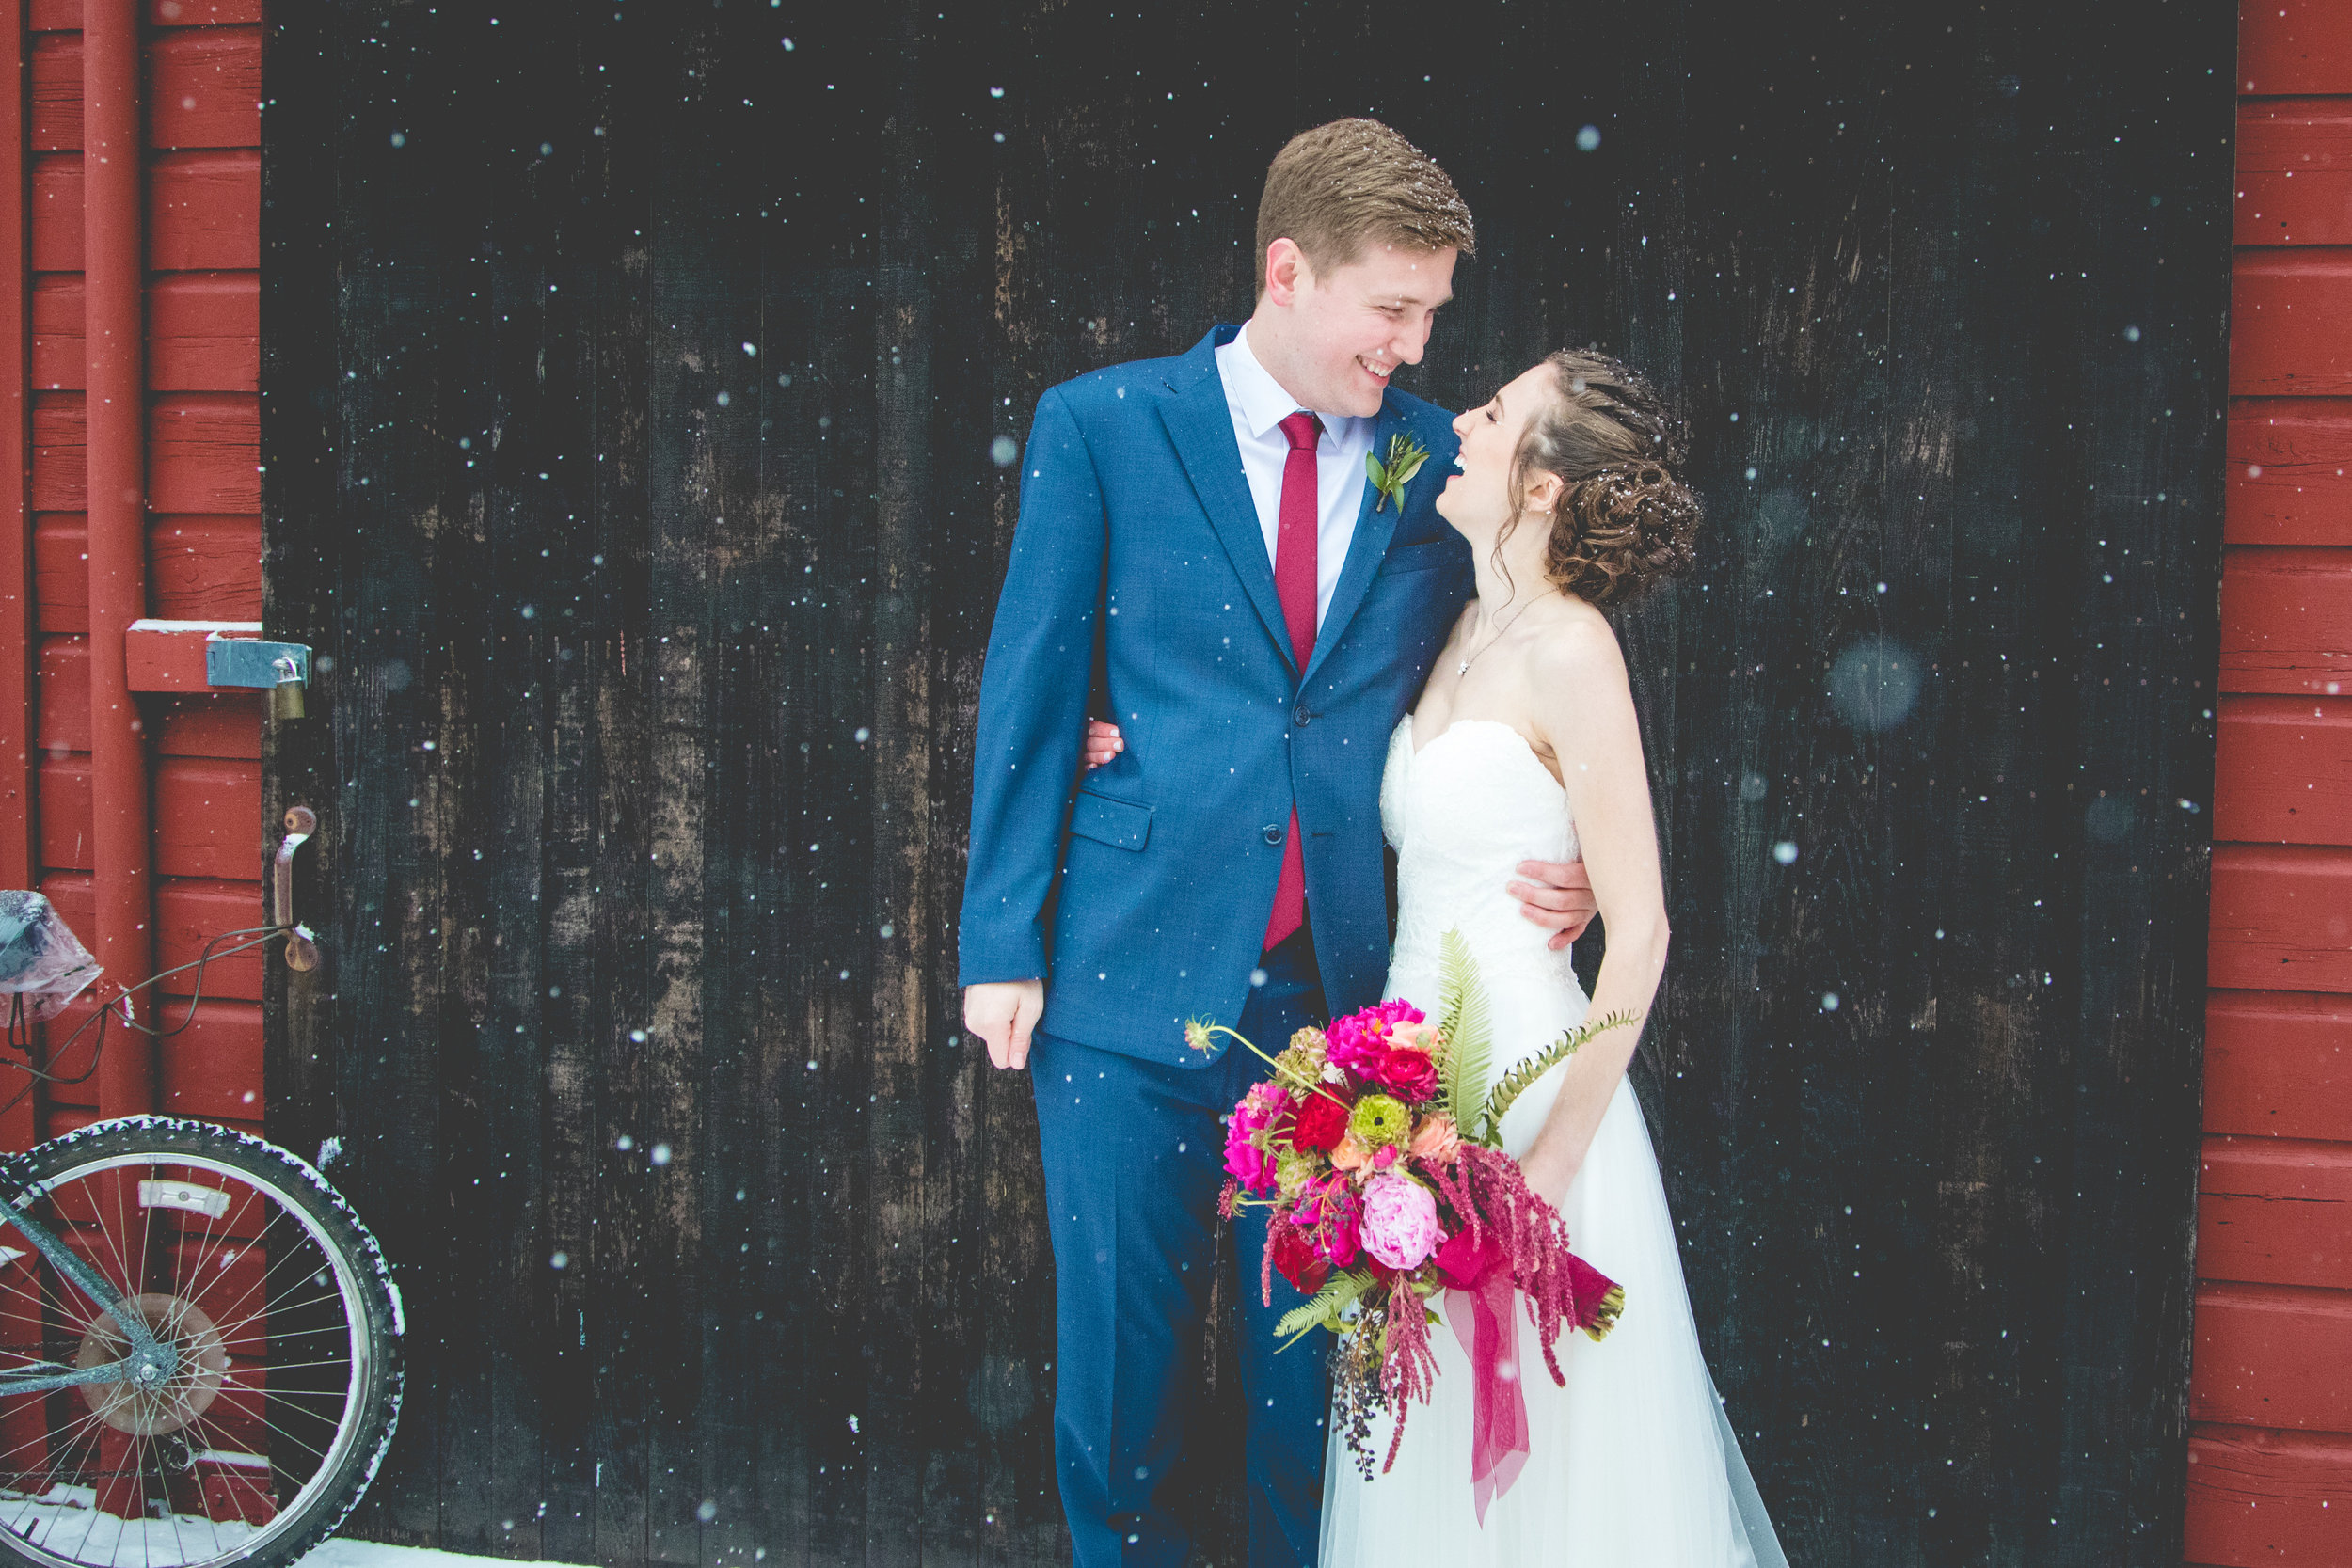 Brandon + Savannah said their sweet vows during a rare snowstorm in Salem, OR.